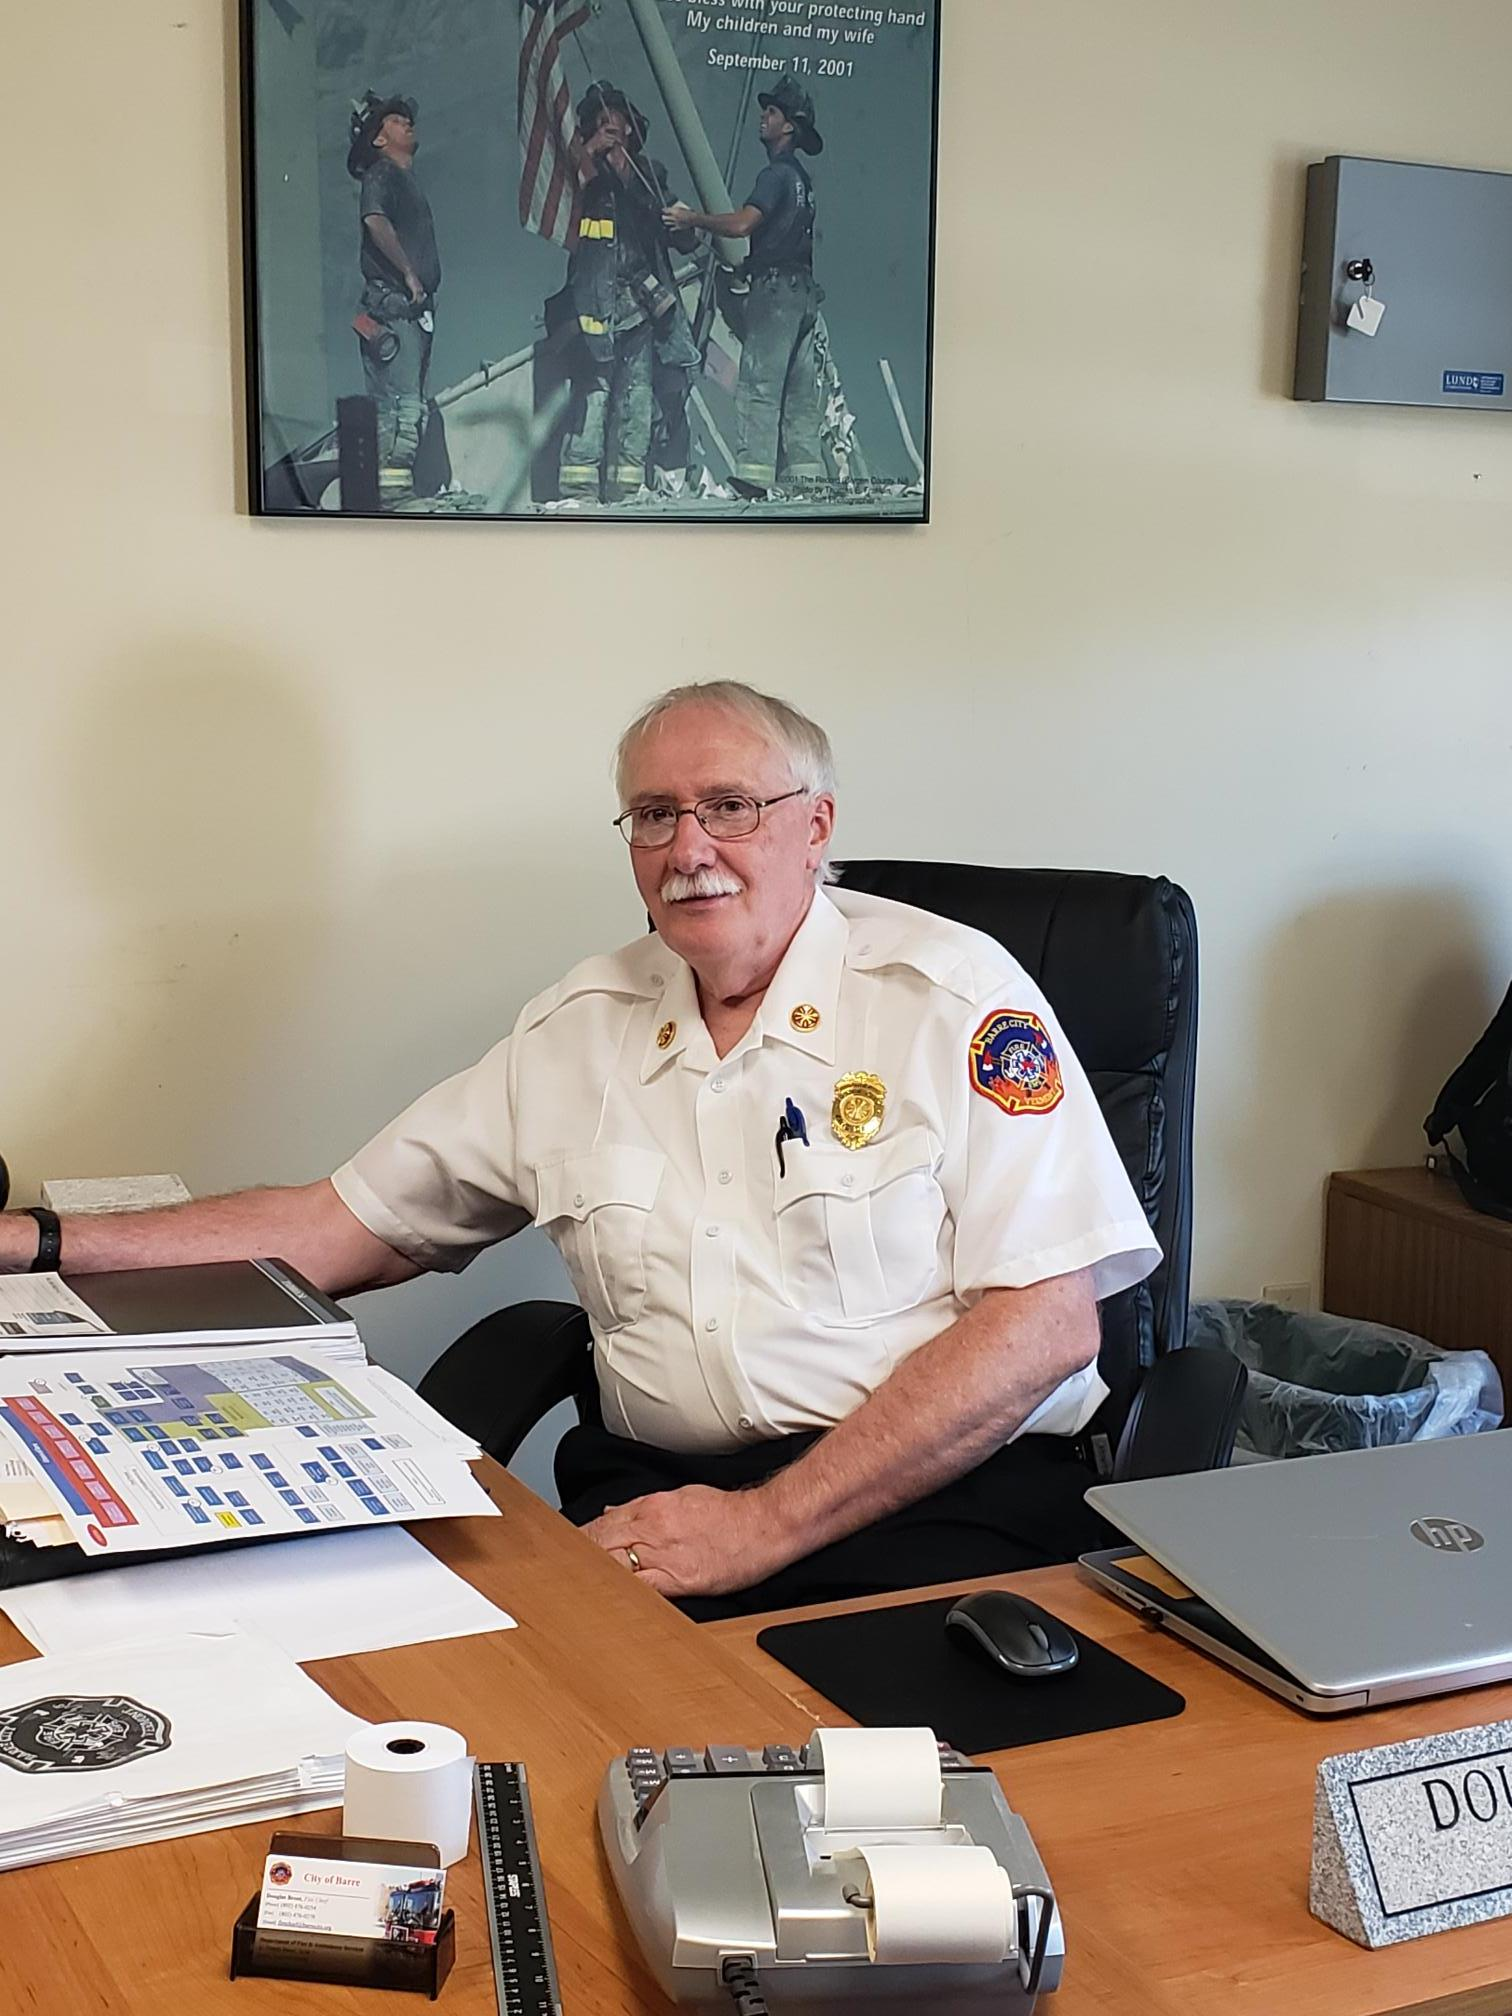 Douglas Brent, Fire Chief